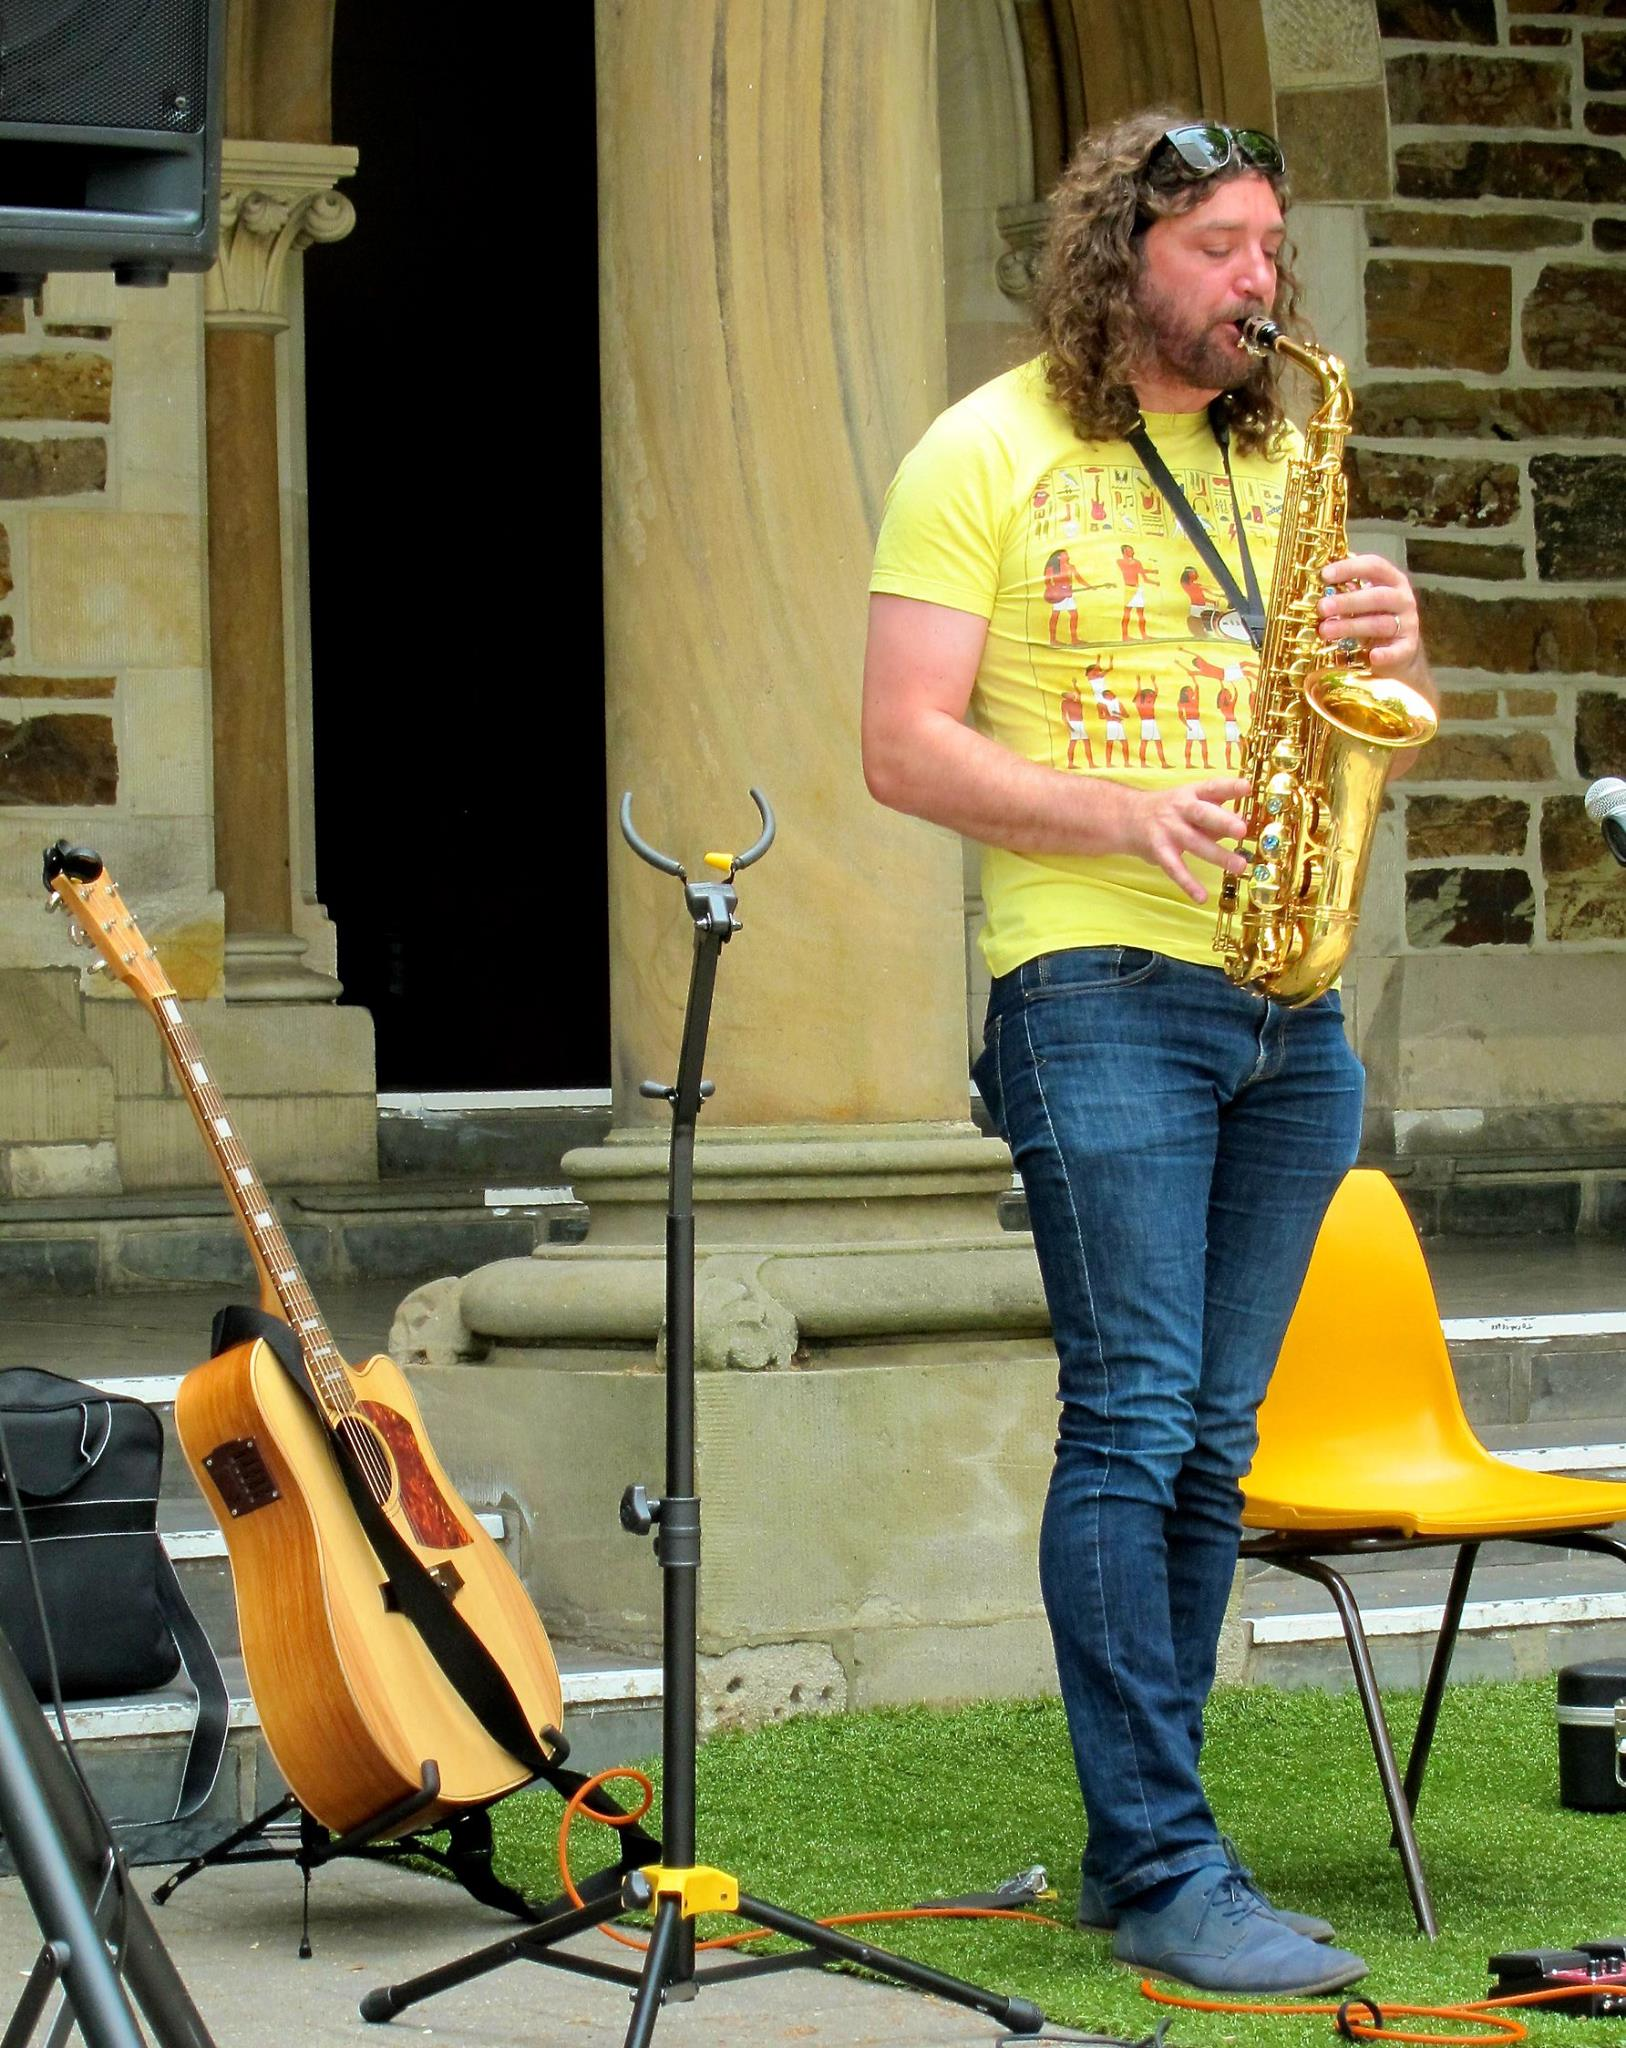 Ferg eventually got around to proving that the sax was not just a prop